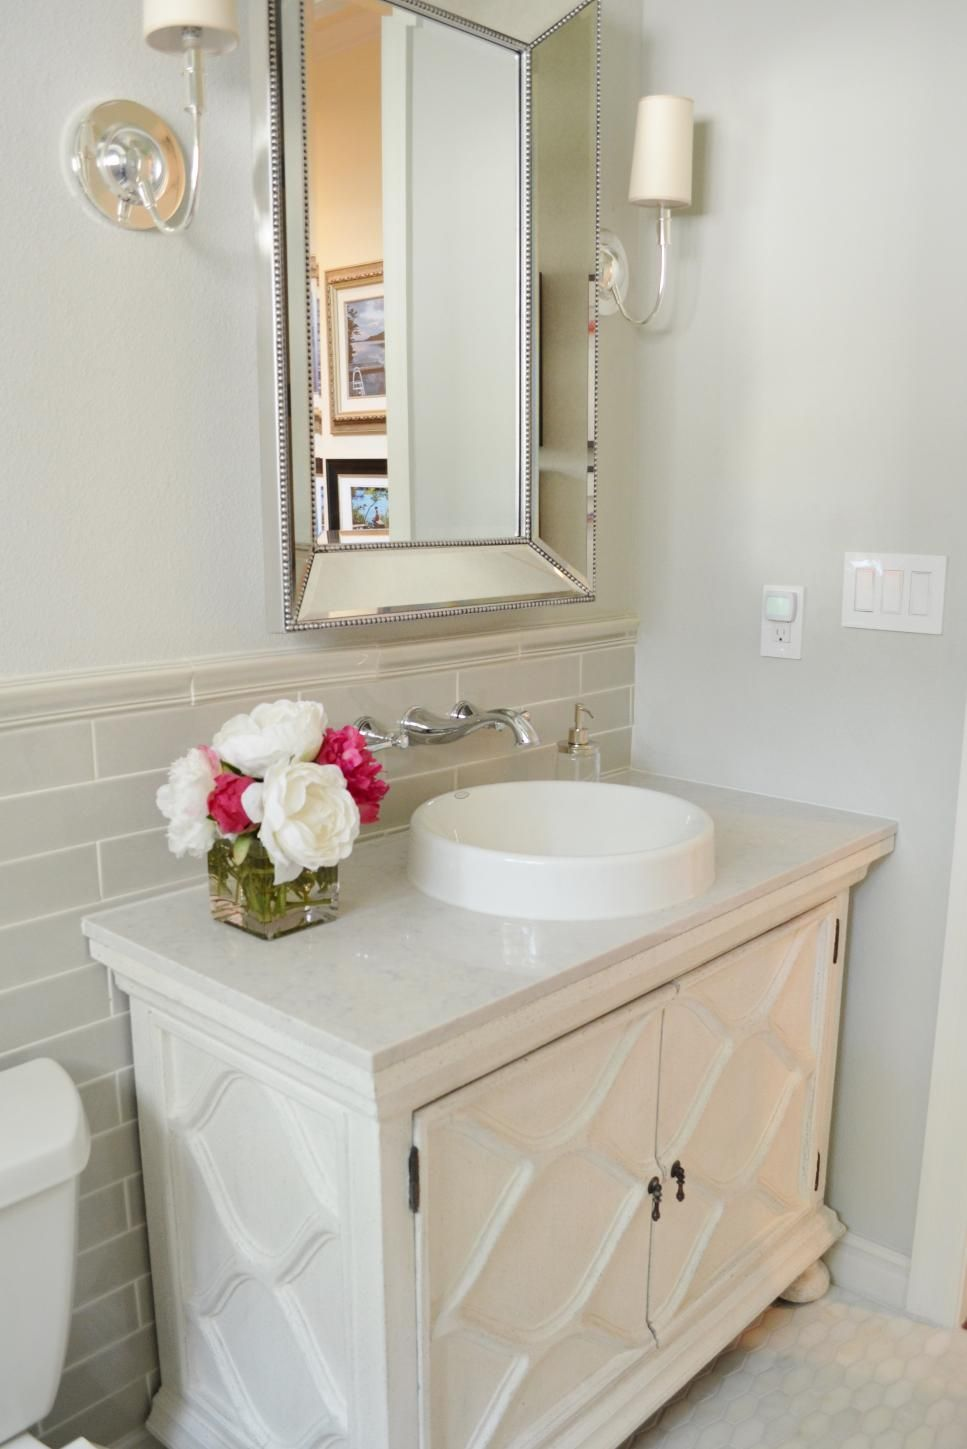 Before and after bathroom remodels on a budget marble - Pictures of remodeled small bathrooms ...